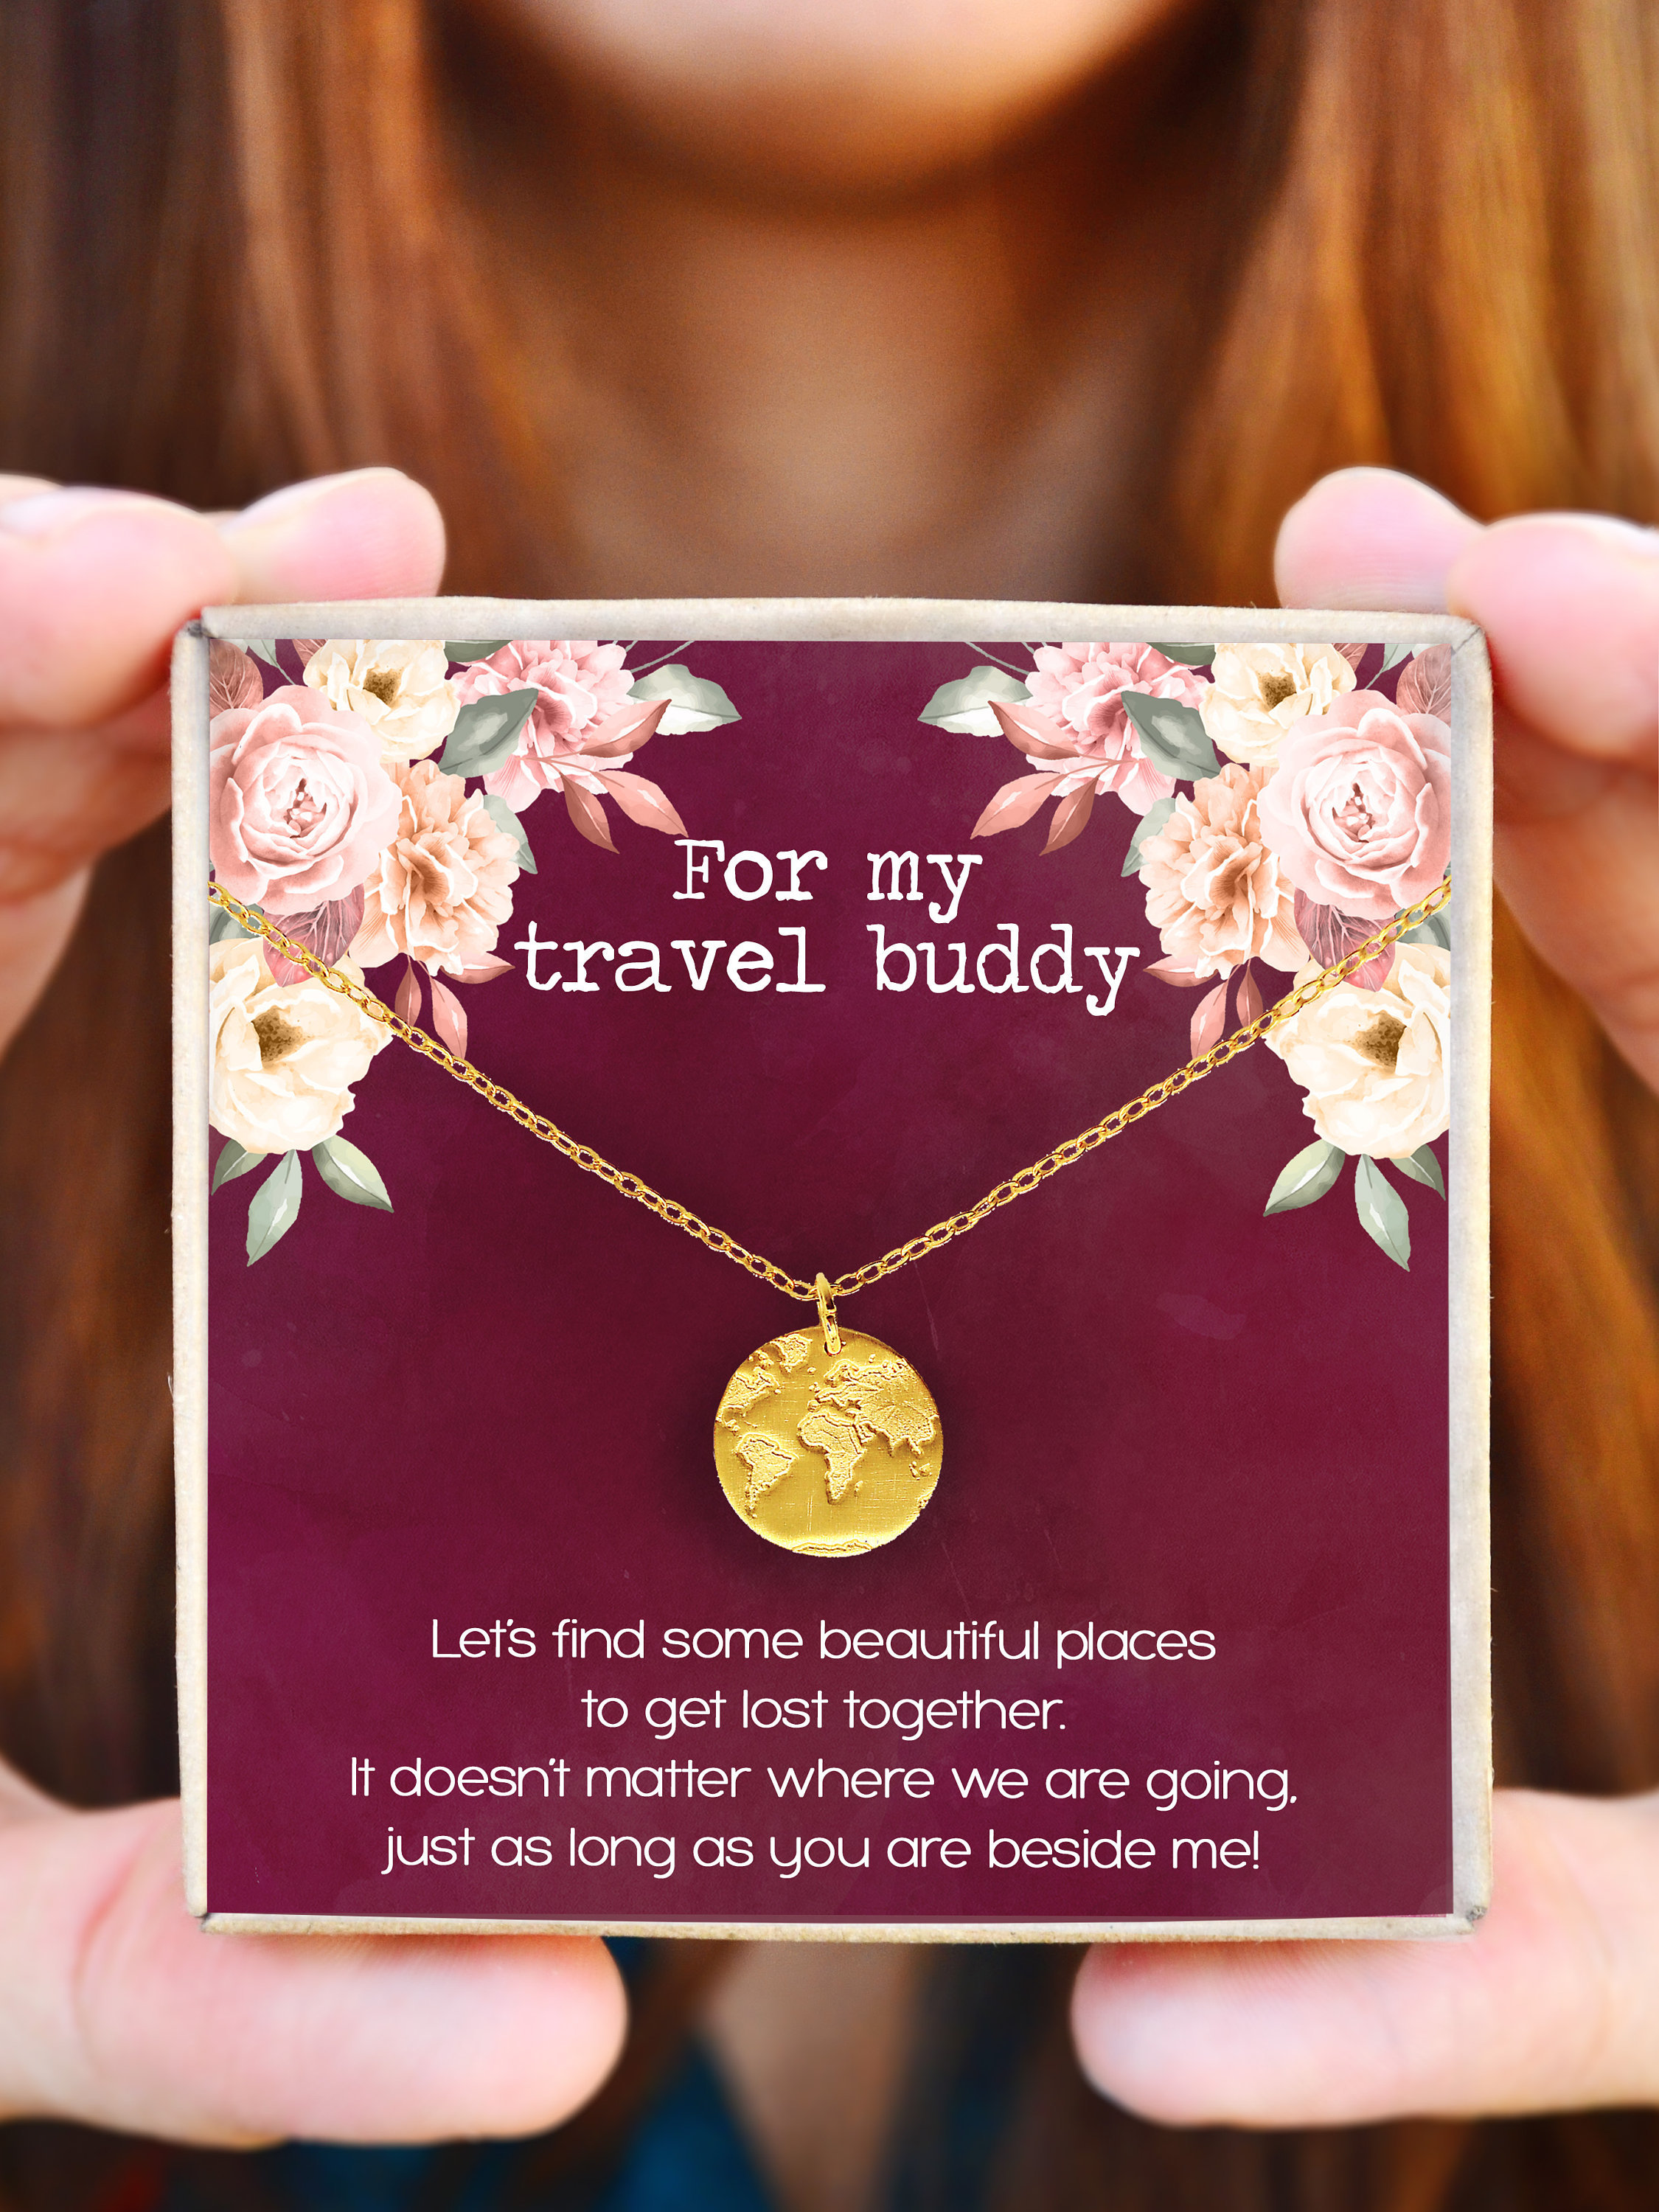 Wanderlust Jewelry Adventure Engraved Silver Bar Chain Necklace 24K Gold Travel Lover Gift Travel Jewelry 18K Rose Gold Gift For Her